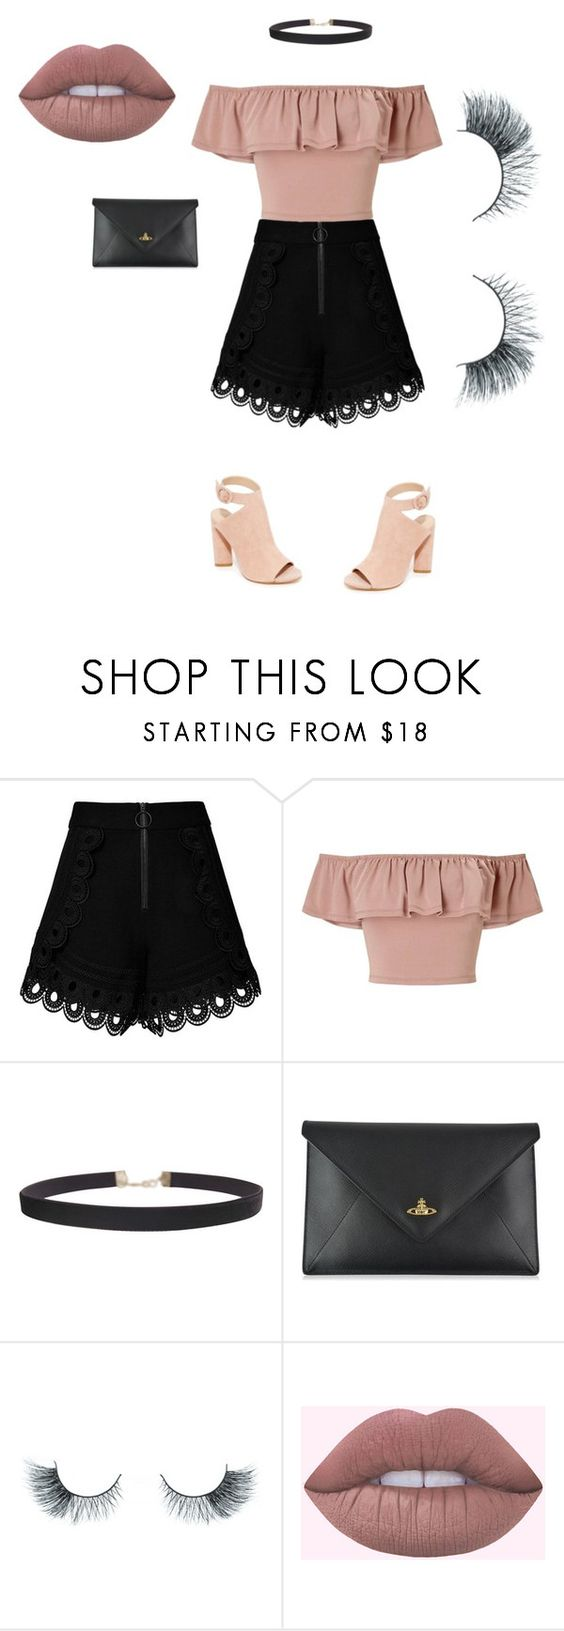 """""""Pinky"""" by hrockholt ❤ liked on Polyvore featuring self-portrait, Miss Selfridge, Humble Chic, Vivienne Westwood, Unicorn Lashes and Kendall + Kylie"""